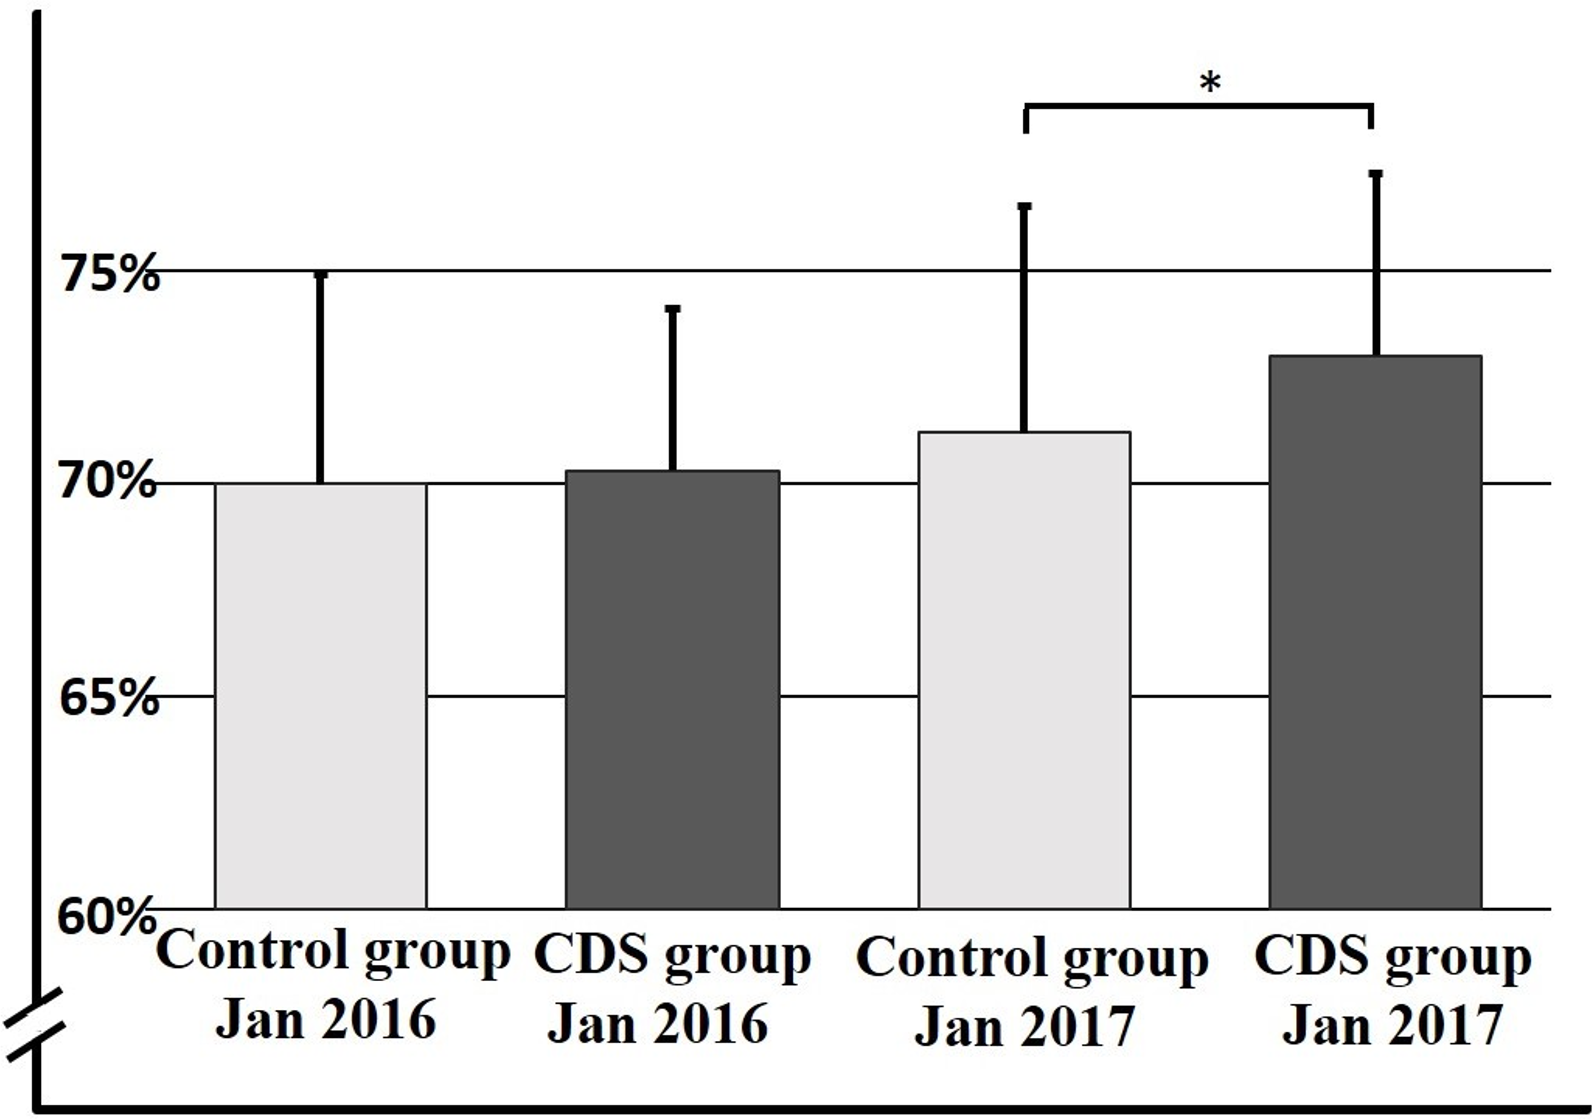 Proportion of eligible patients prescribed anticoagulant therapy after 12 months in control and CDS groups.